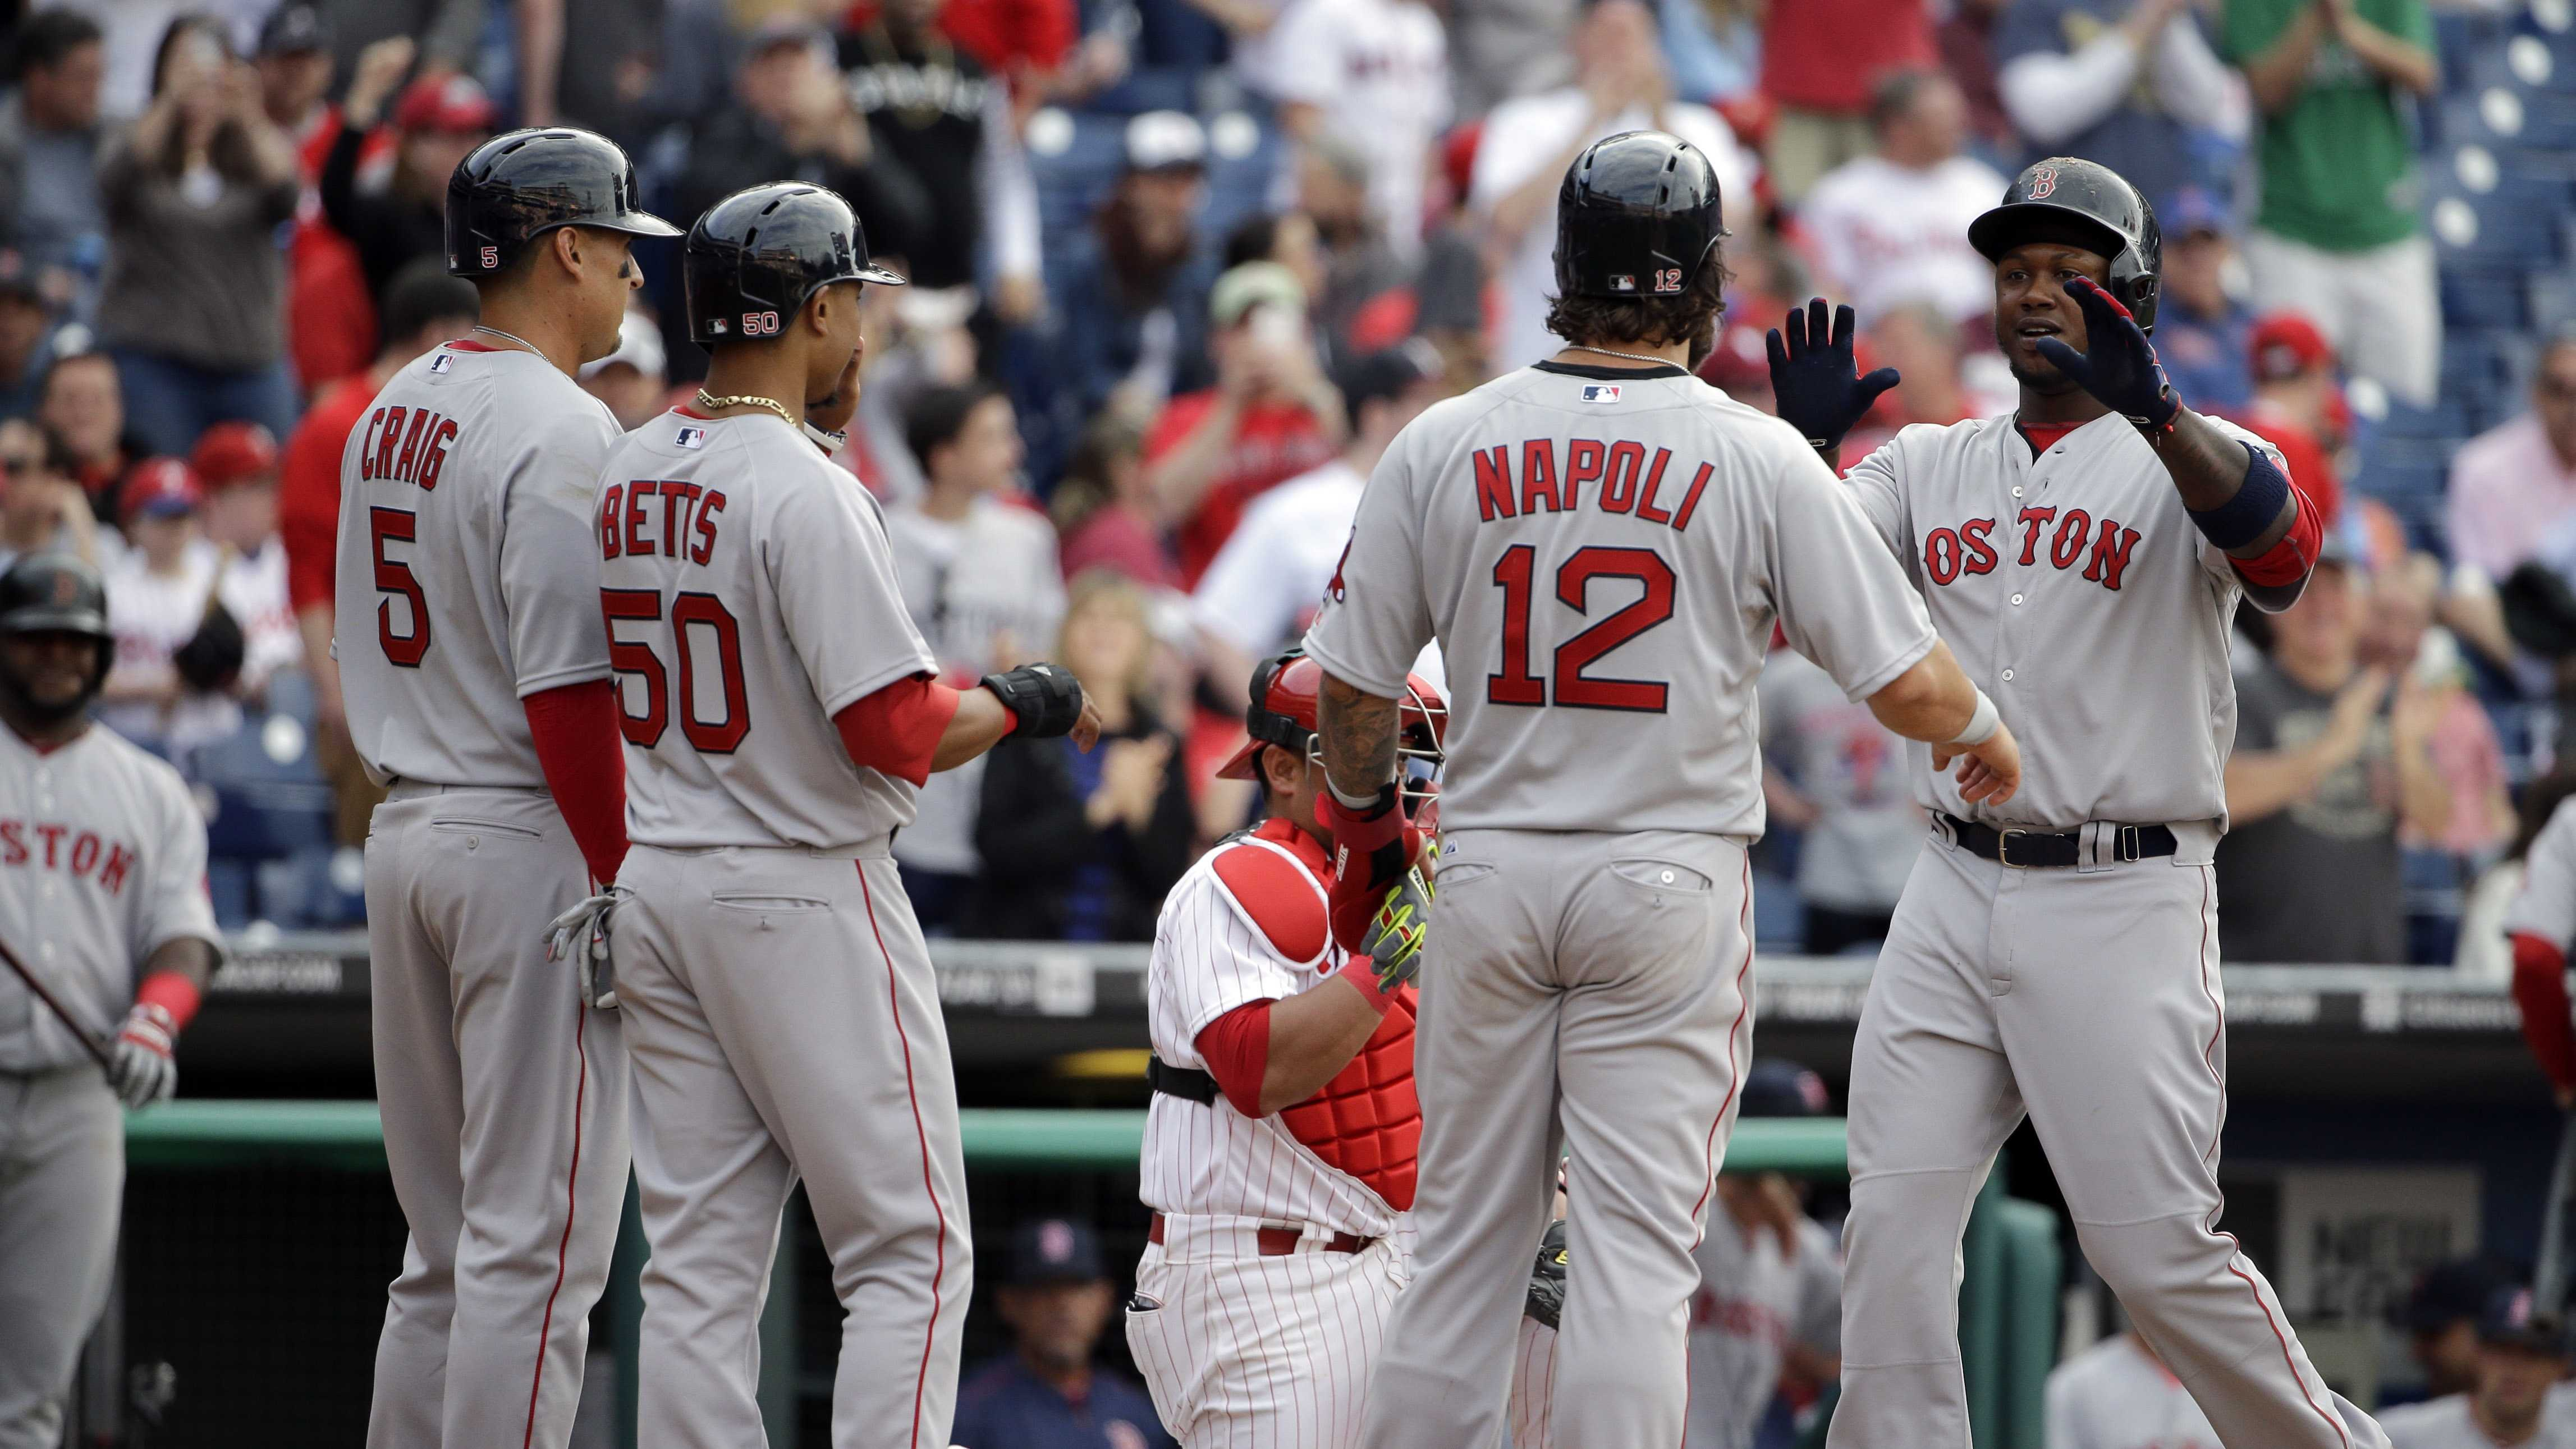 Boston Red Sox's Hanley Ramirez, right, is congratulated by teammates Allen Craig (5), Mookie Betts (50), and Mike Napoli (12) after hitting a grand slam during the ninth inning of an opening day baseball game against Philadelphia Phillies on Monday, April 6, 2015, in Philadelphia. Red Sox won 8-0.